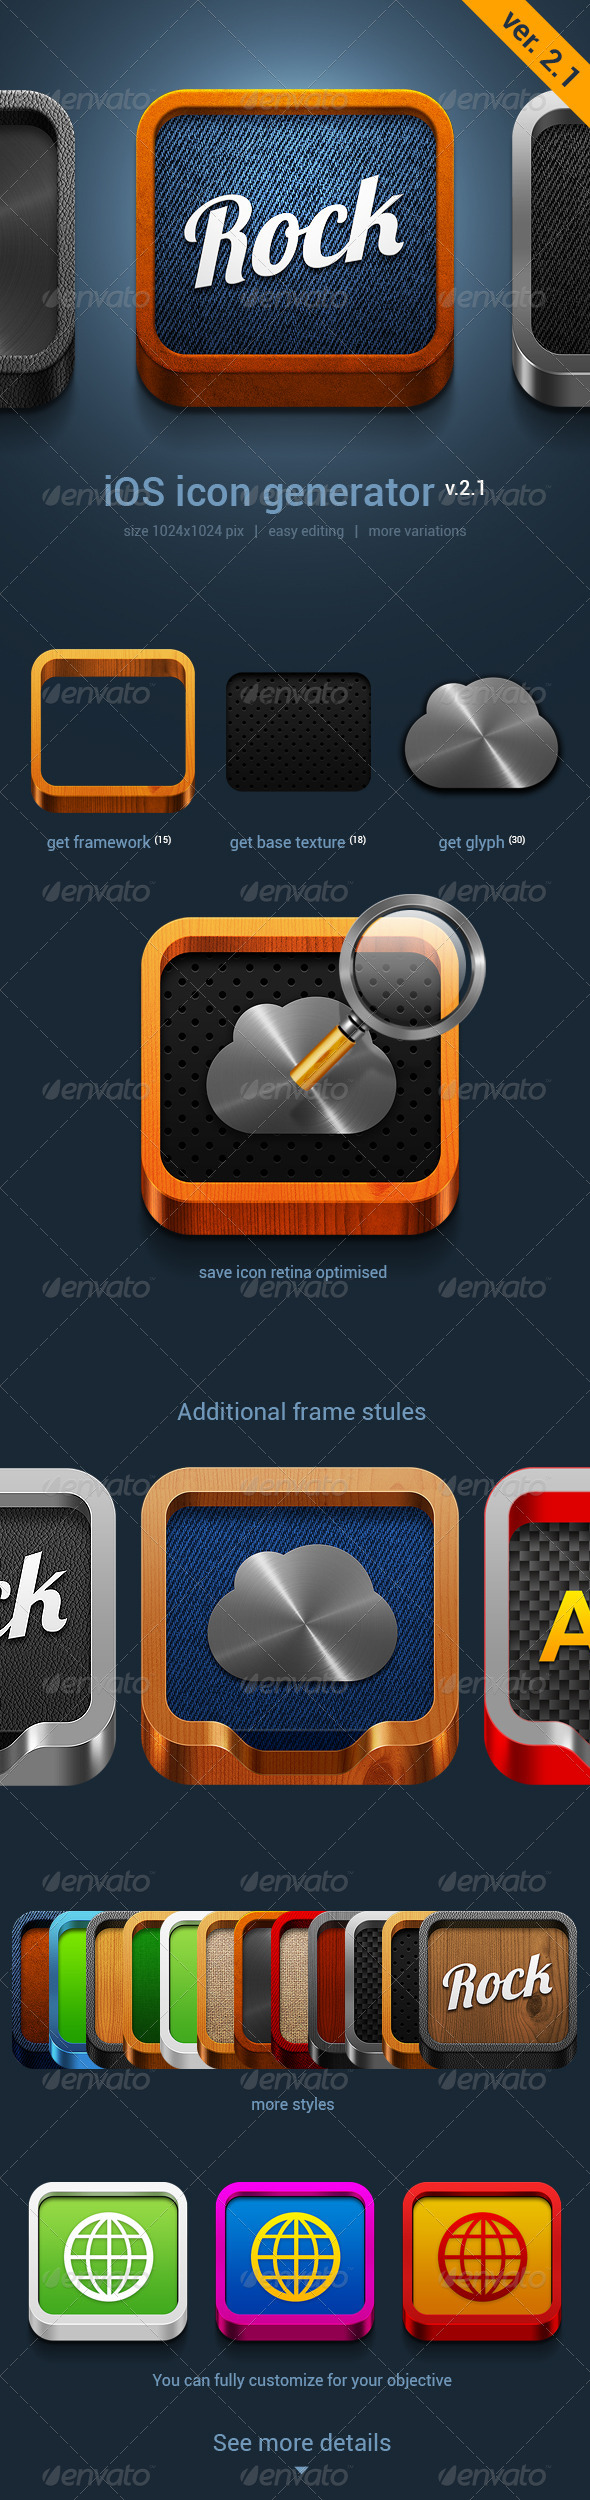 GraphicRiver iOS Icon Generator V.2.1 4917119